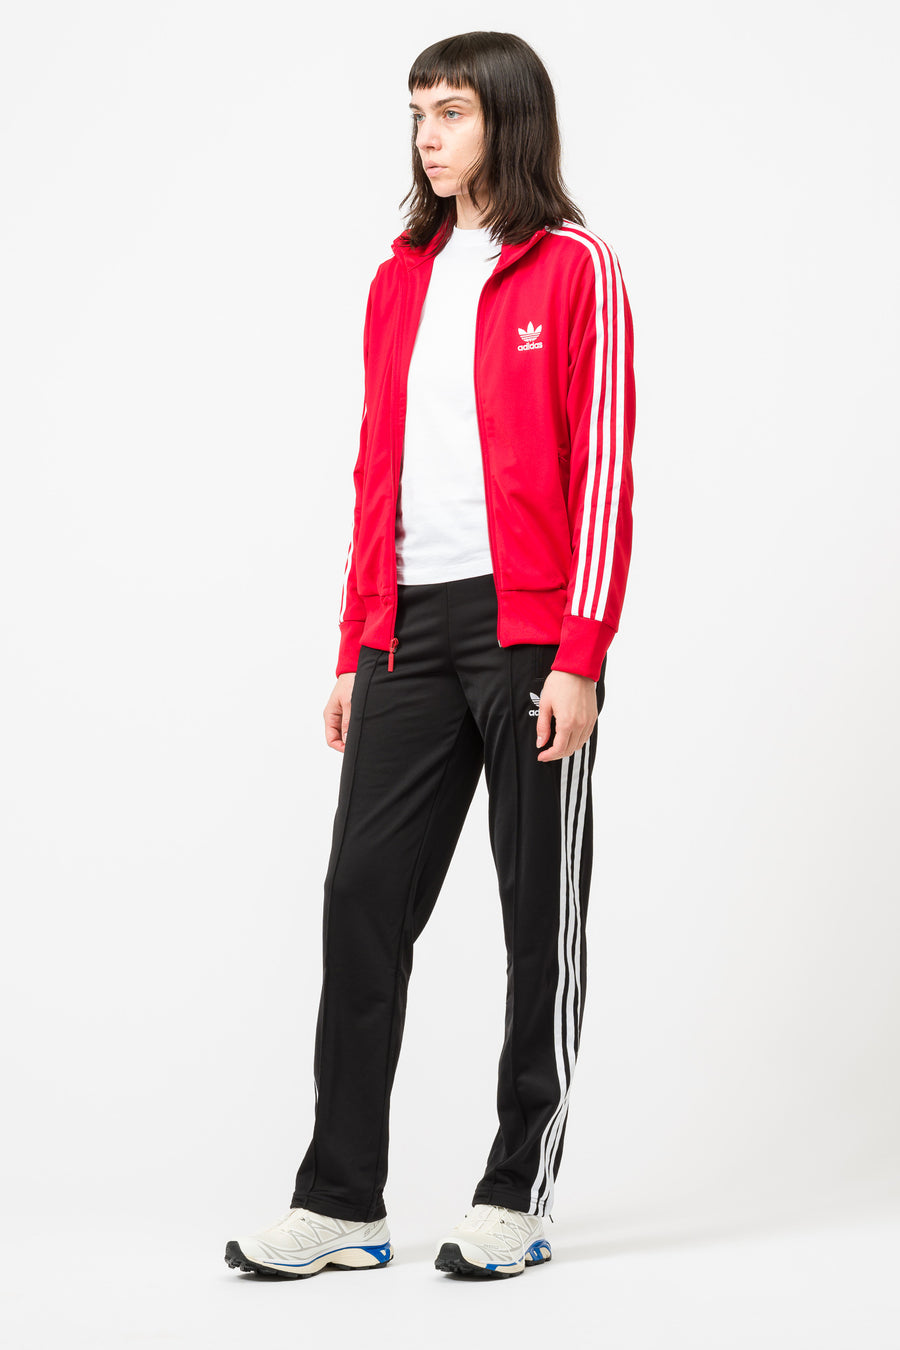 adidas Firebird Track Top in Scarlet - Notre